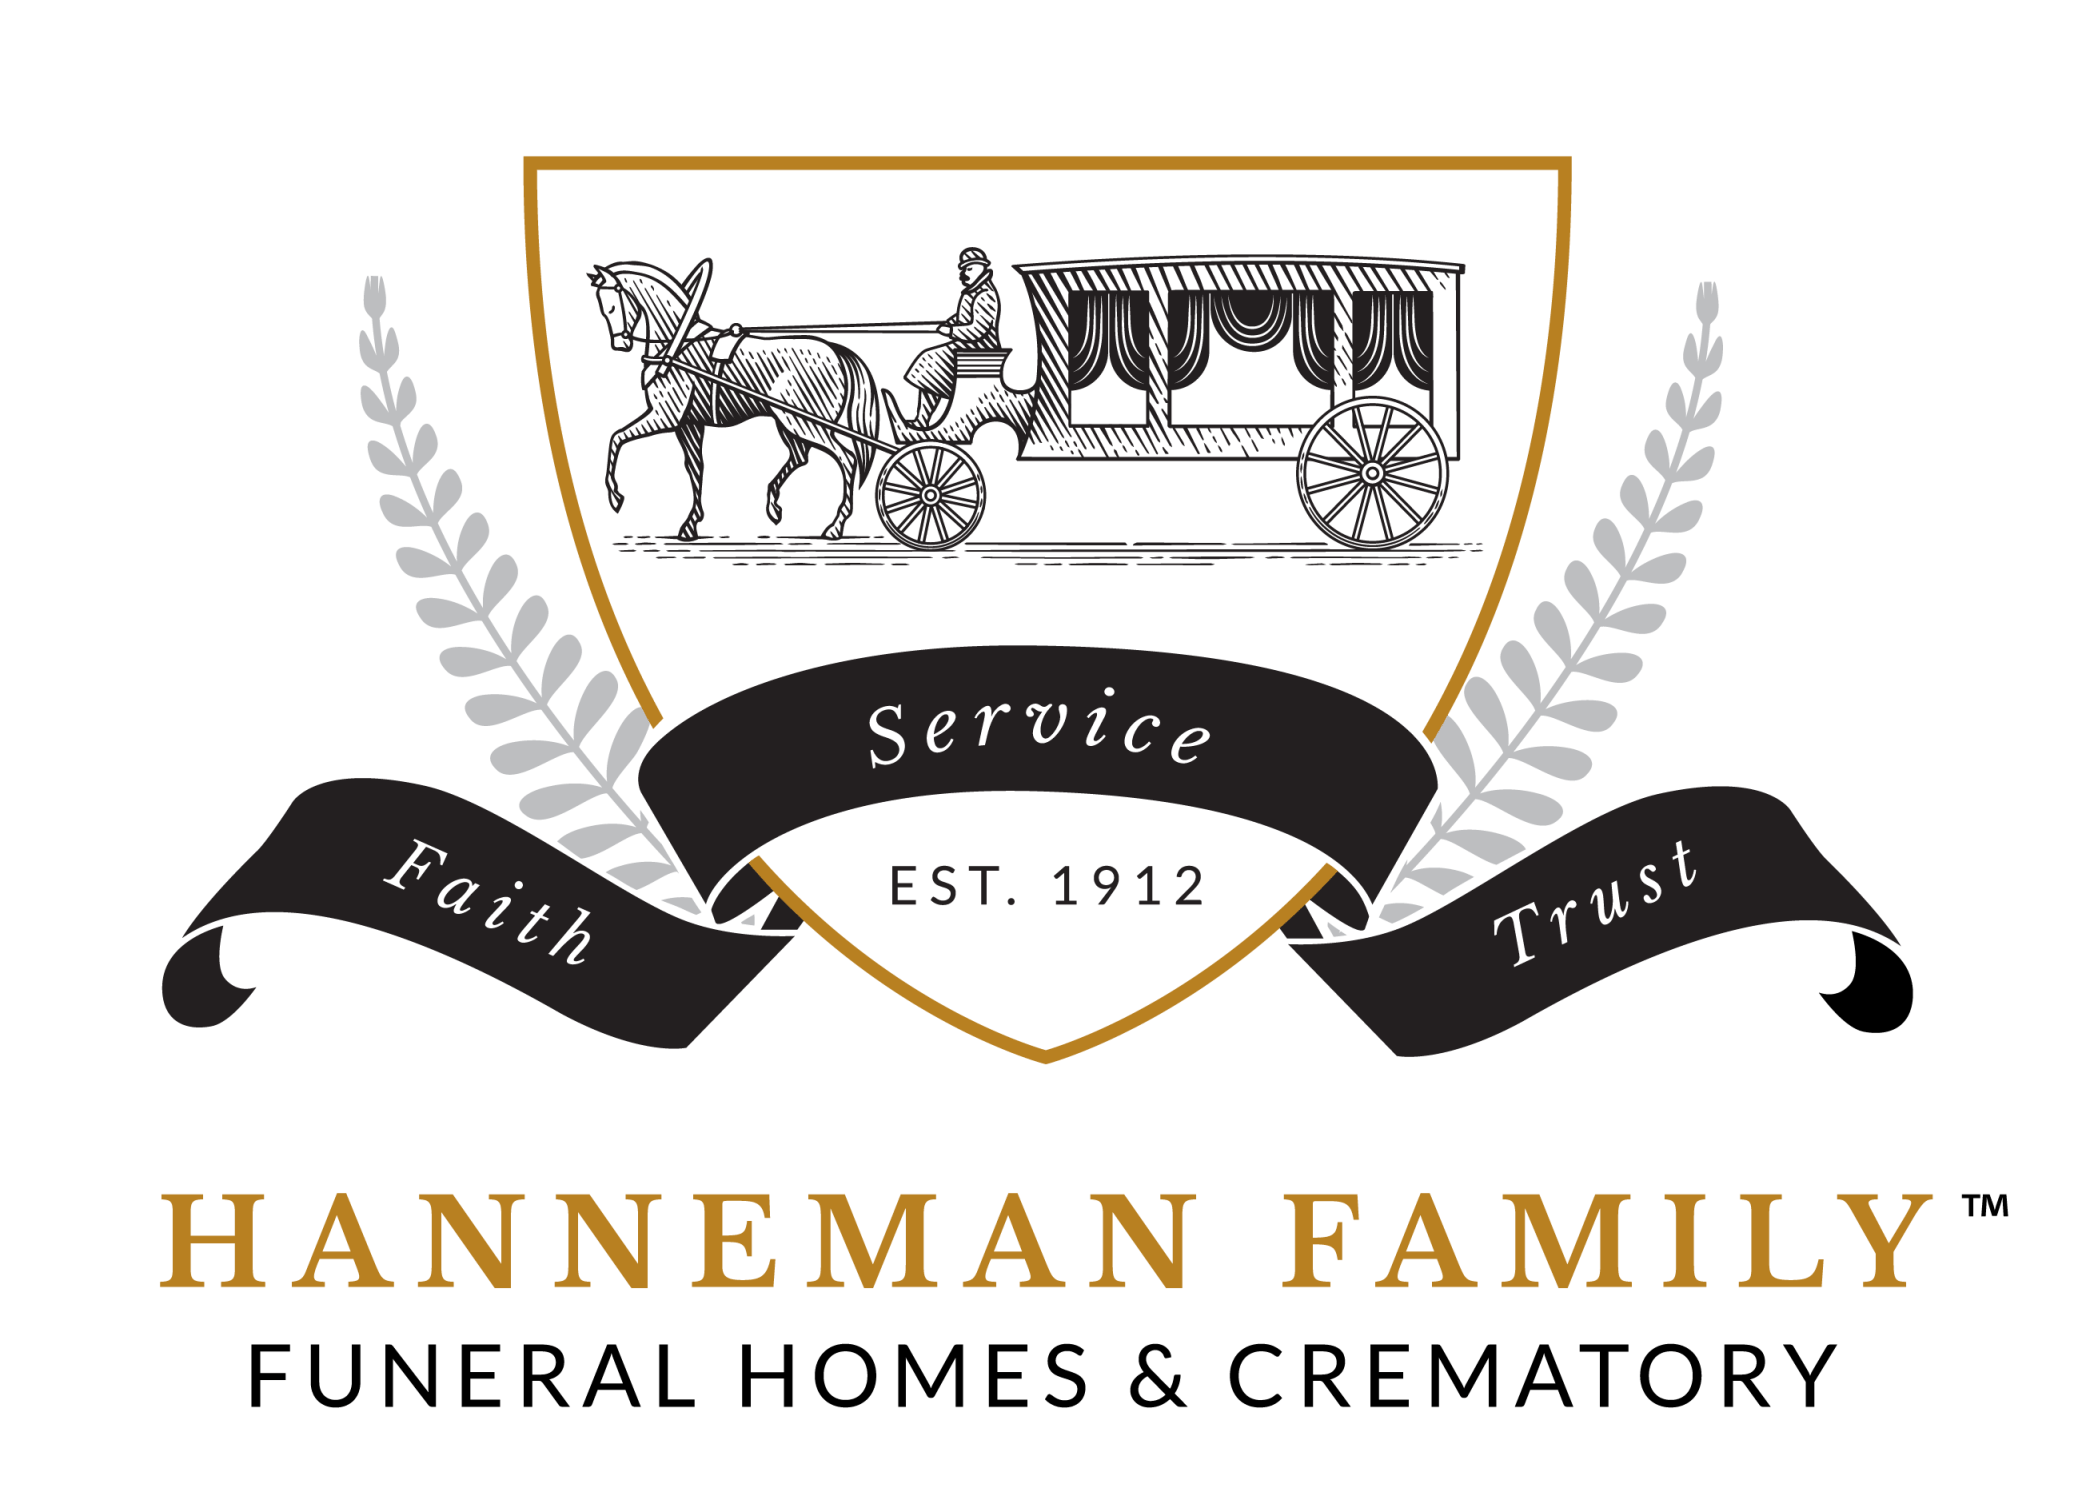 Hanneman Family Funeral Homes & Crematory | Bowling Green OH funeral